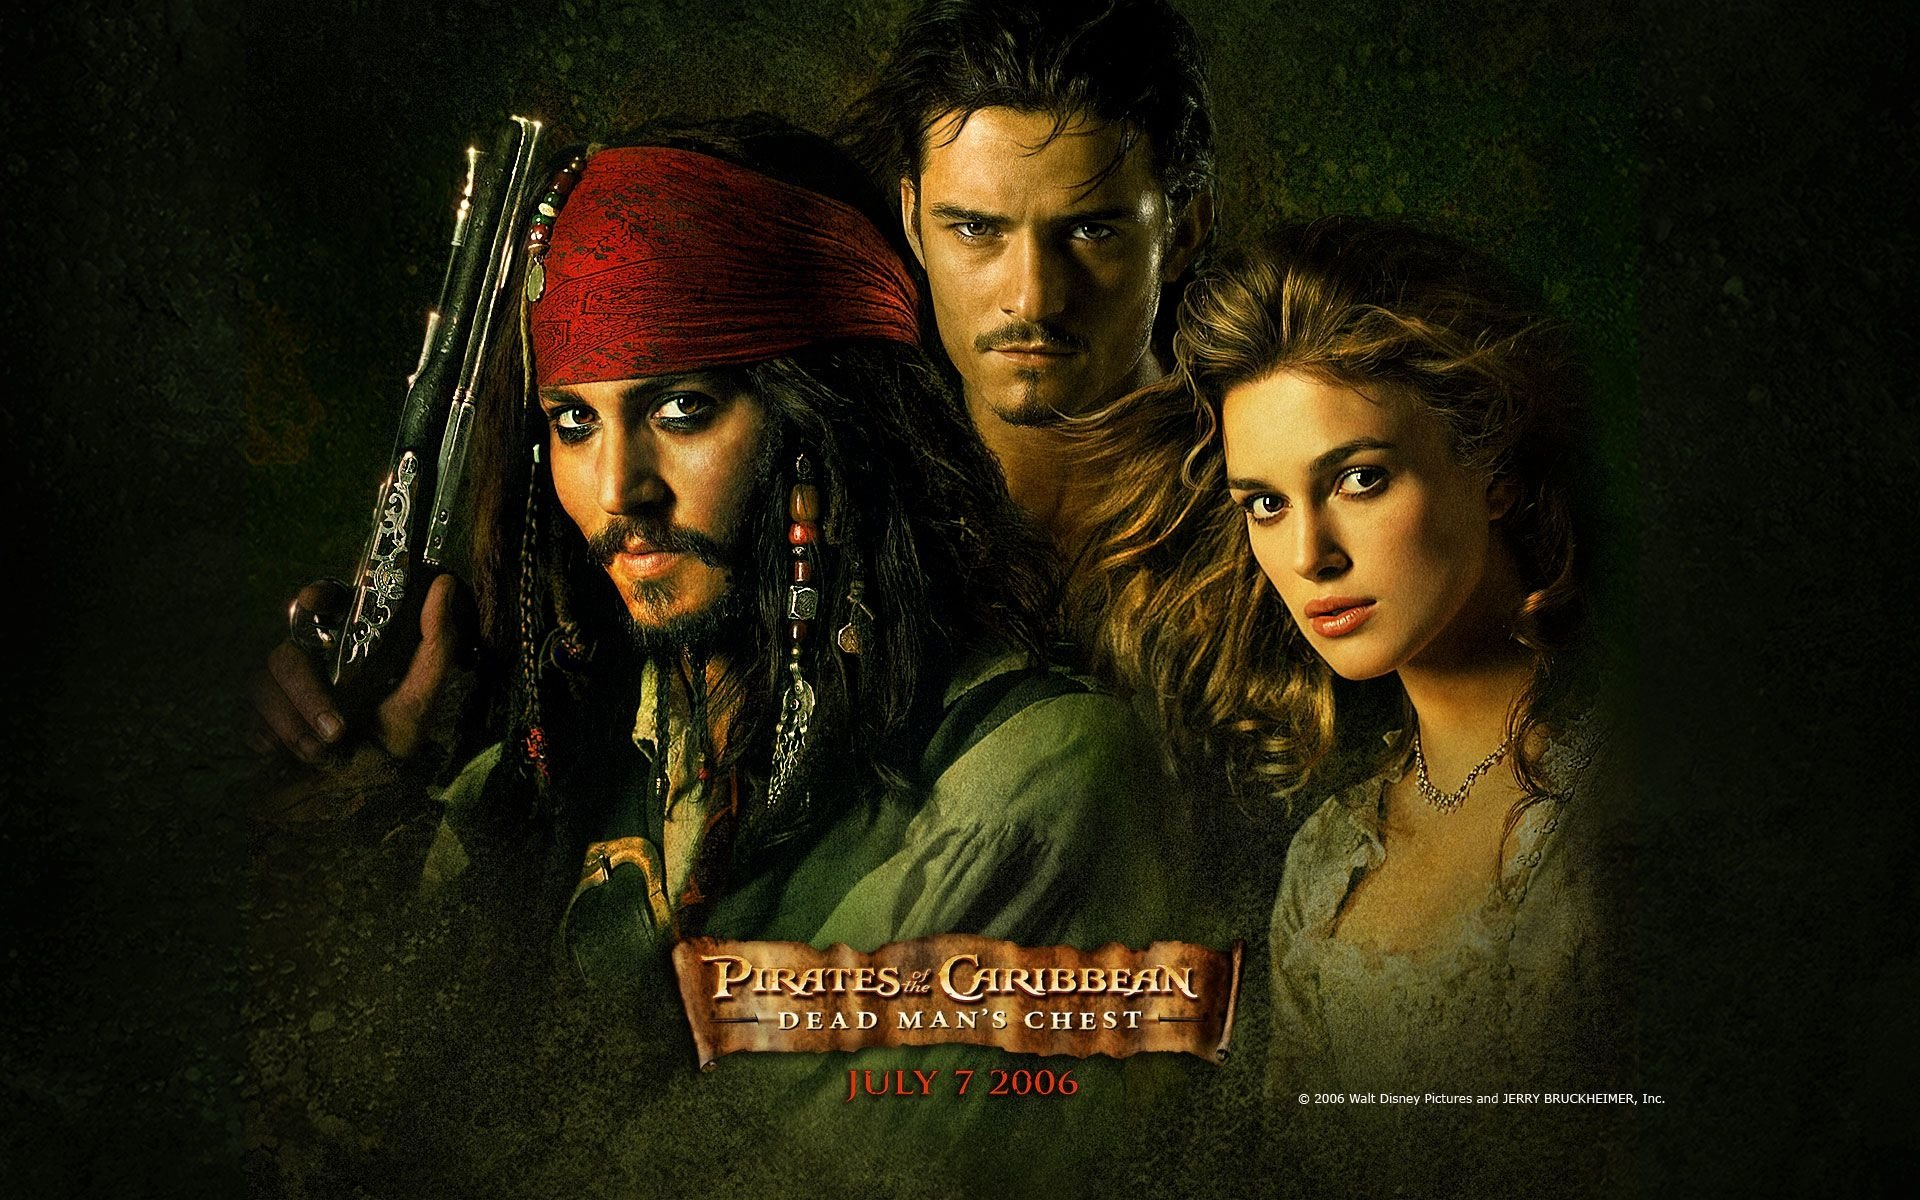 Movie - Pirates Of The Caribbean: Dead Man's Chest  Movie Johnny Depp Jack Sparrow Orlando Bloom Keira Knightley Elizabeth Swann Wallpaper